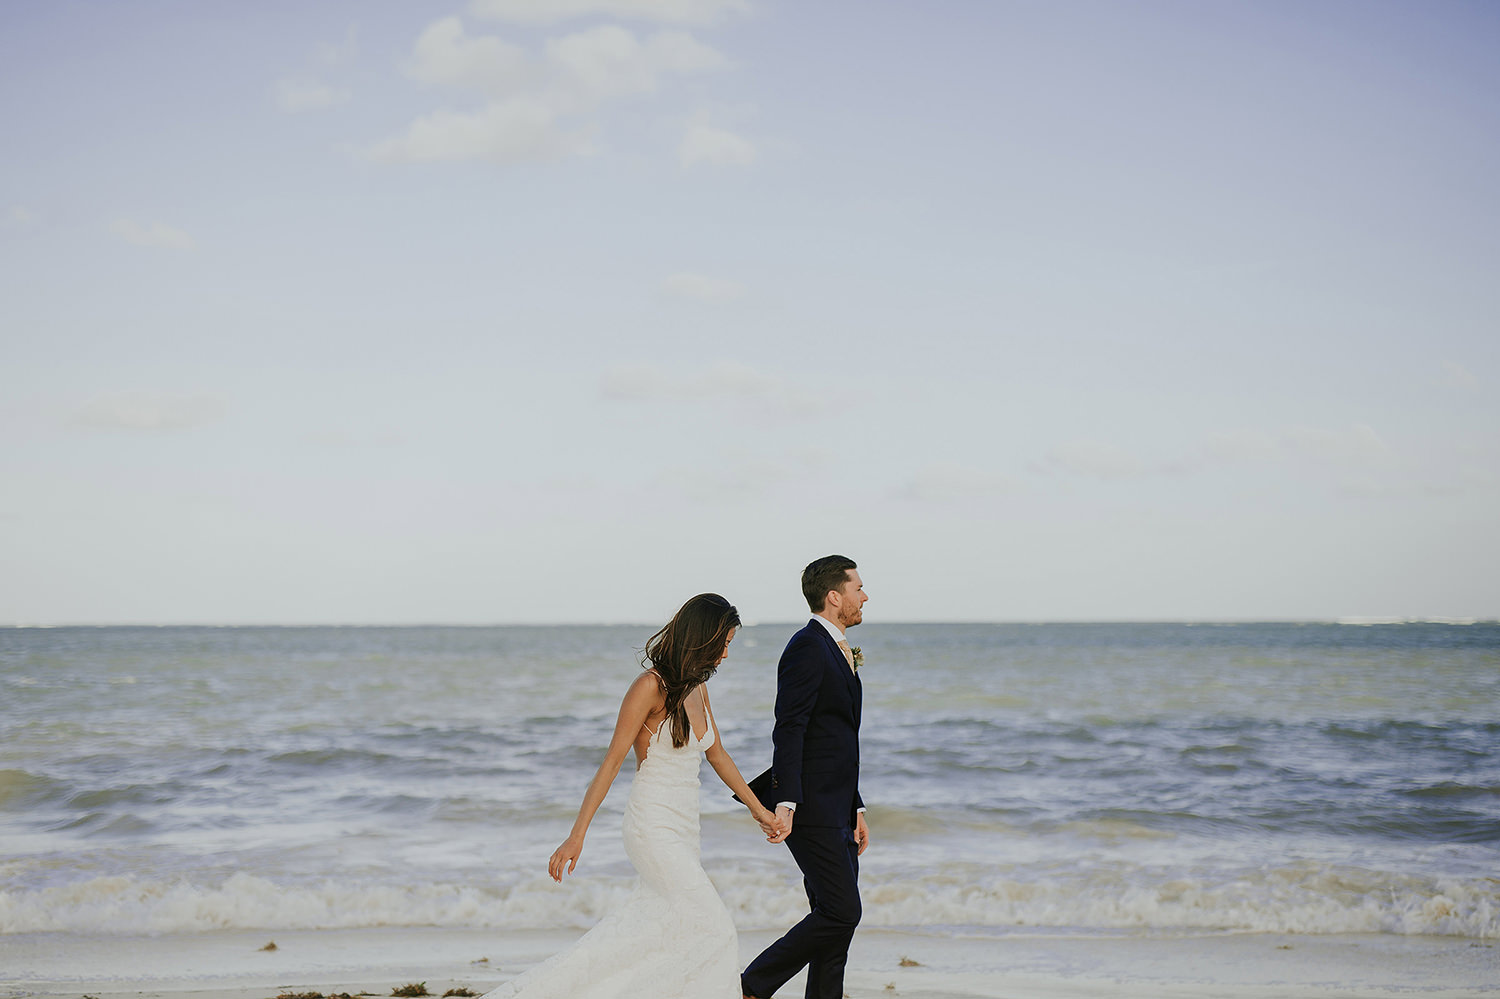 CherylReed_Wedding_Kape_Photography_WeddingPhotography_Mexico_Boda_Fotografia_Royalton_Hideway_Cancun_RivieraMaya_PlayadelCarmen_Beach_1065FB_BLOG.jpg